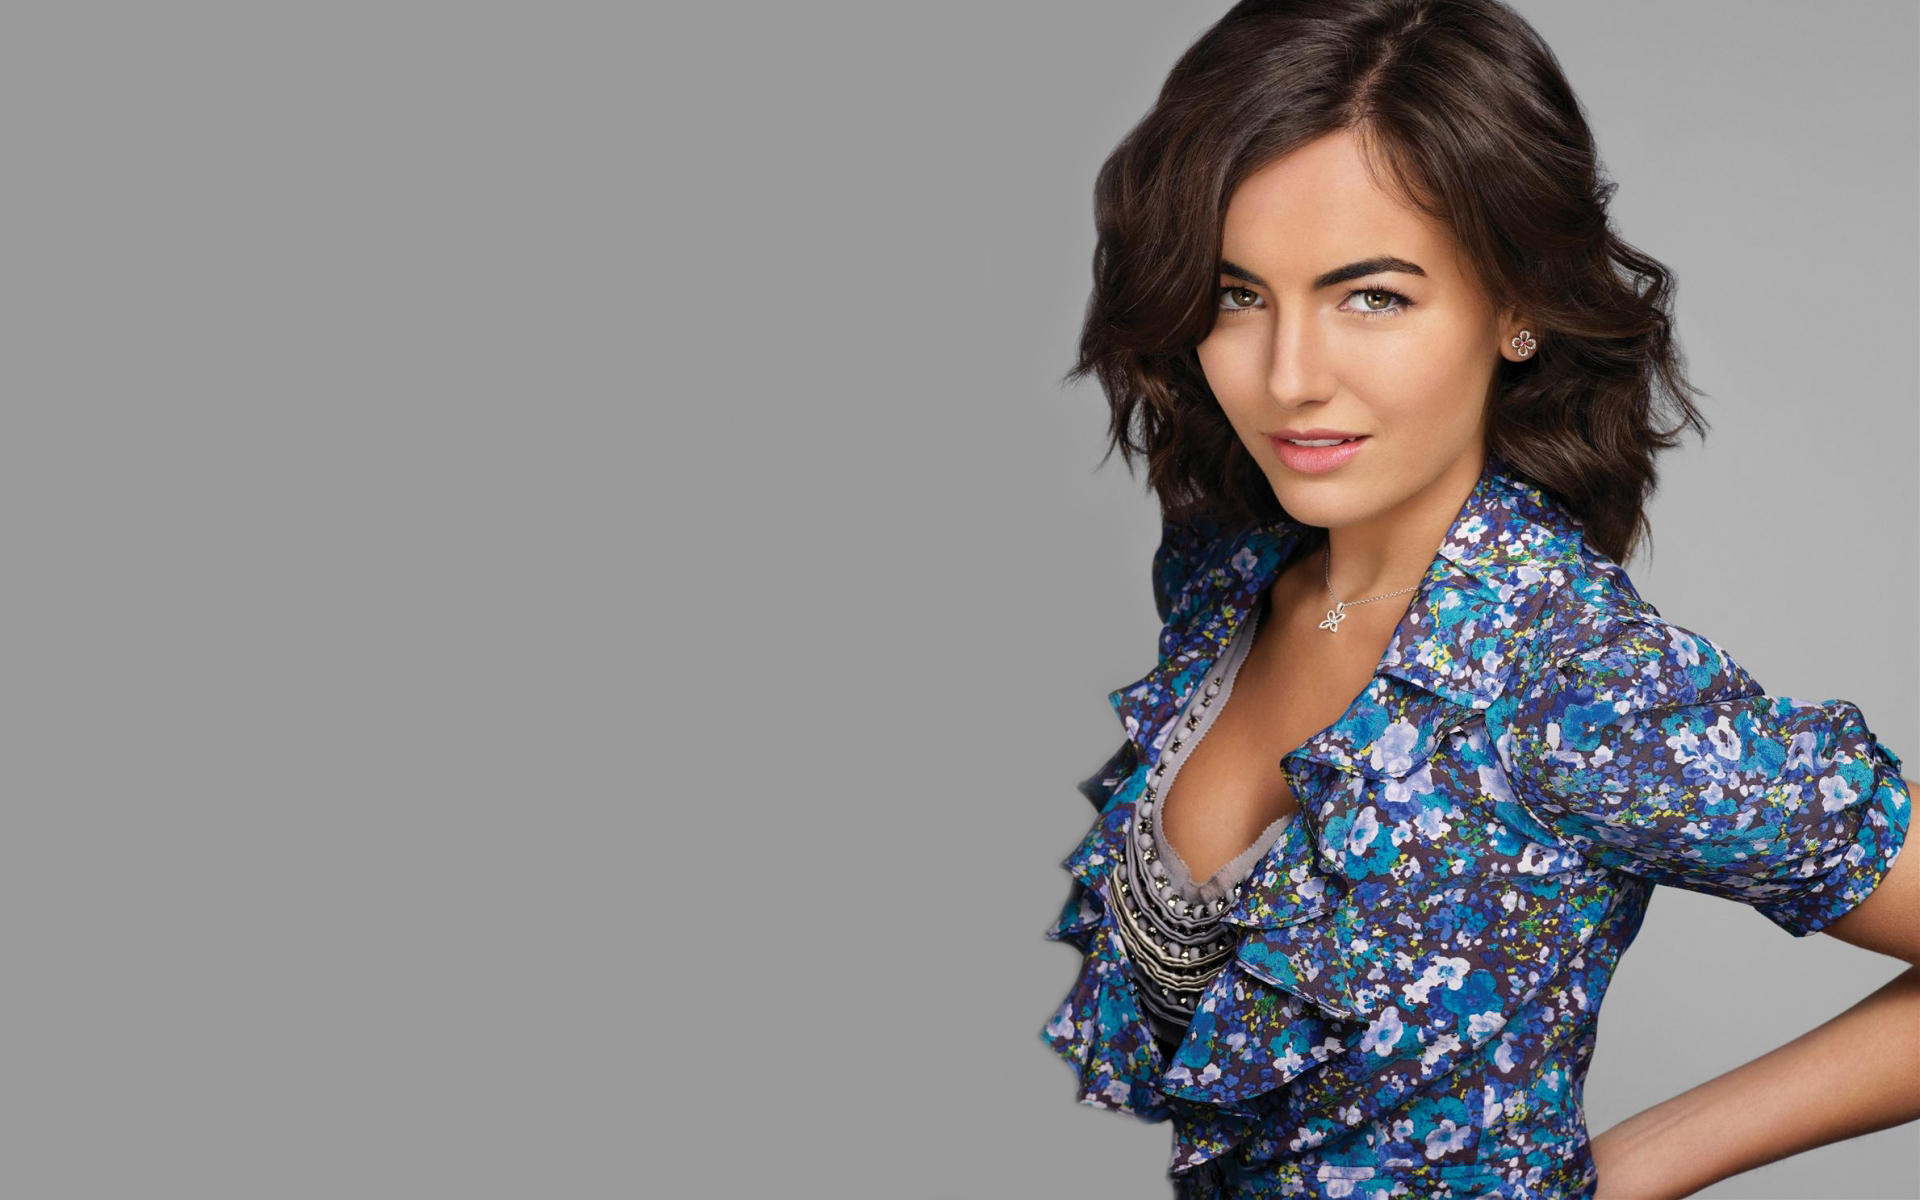 1920x1200 - Camilla Belle Wallpapers 13